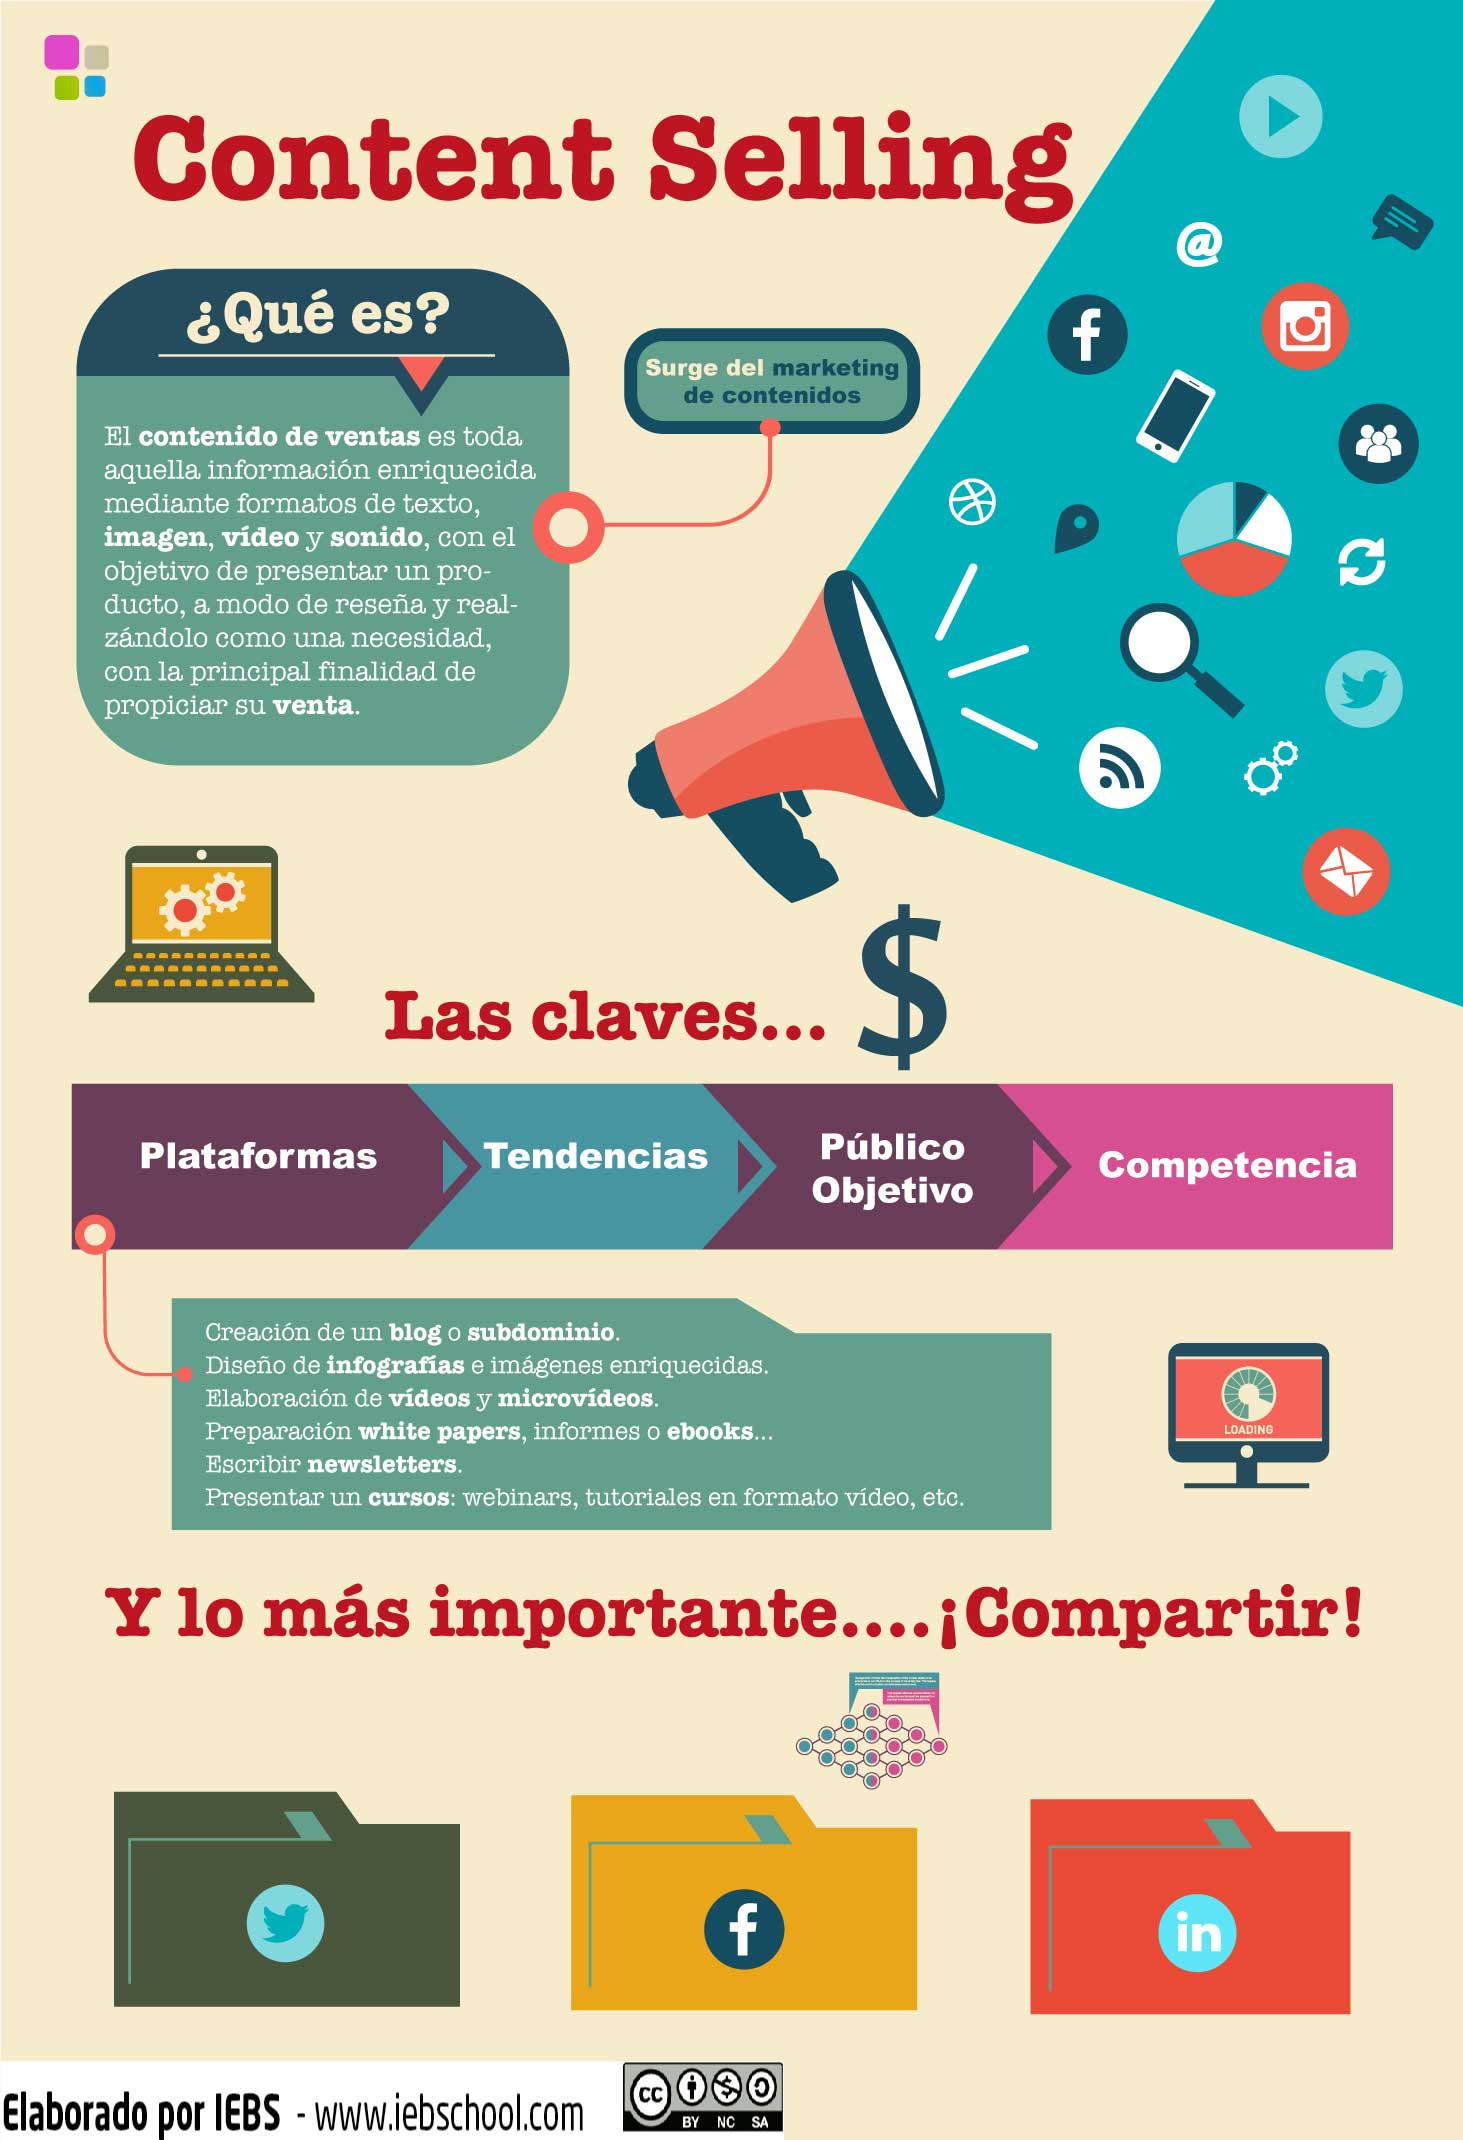 Del marketing de contenidos al 'content selling' - Infografia Content Selling